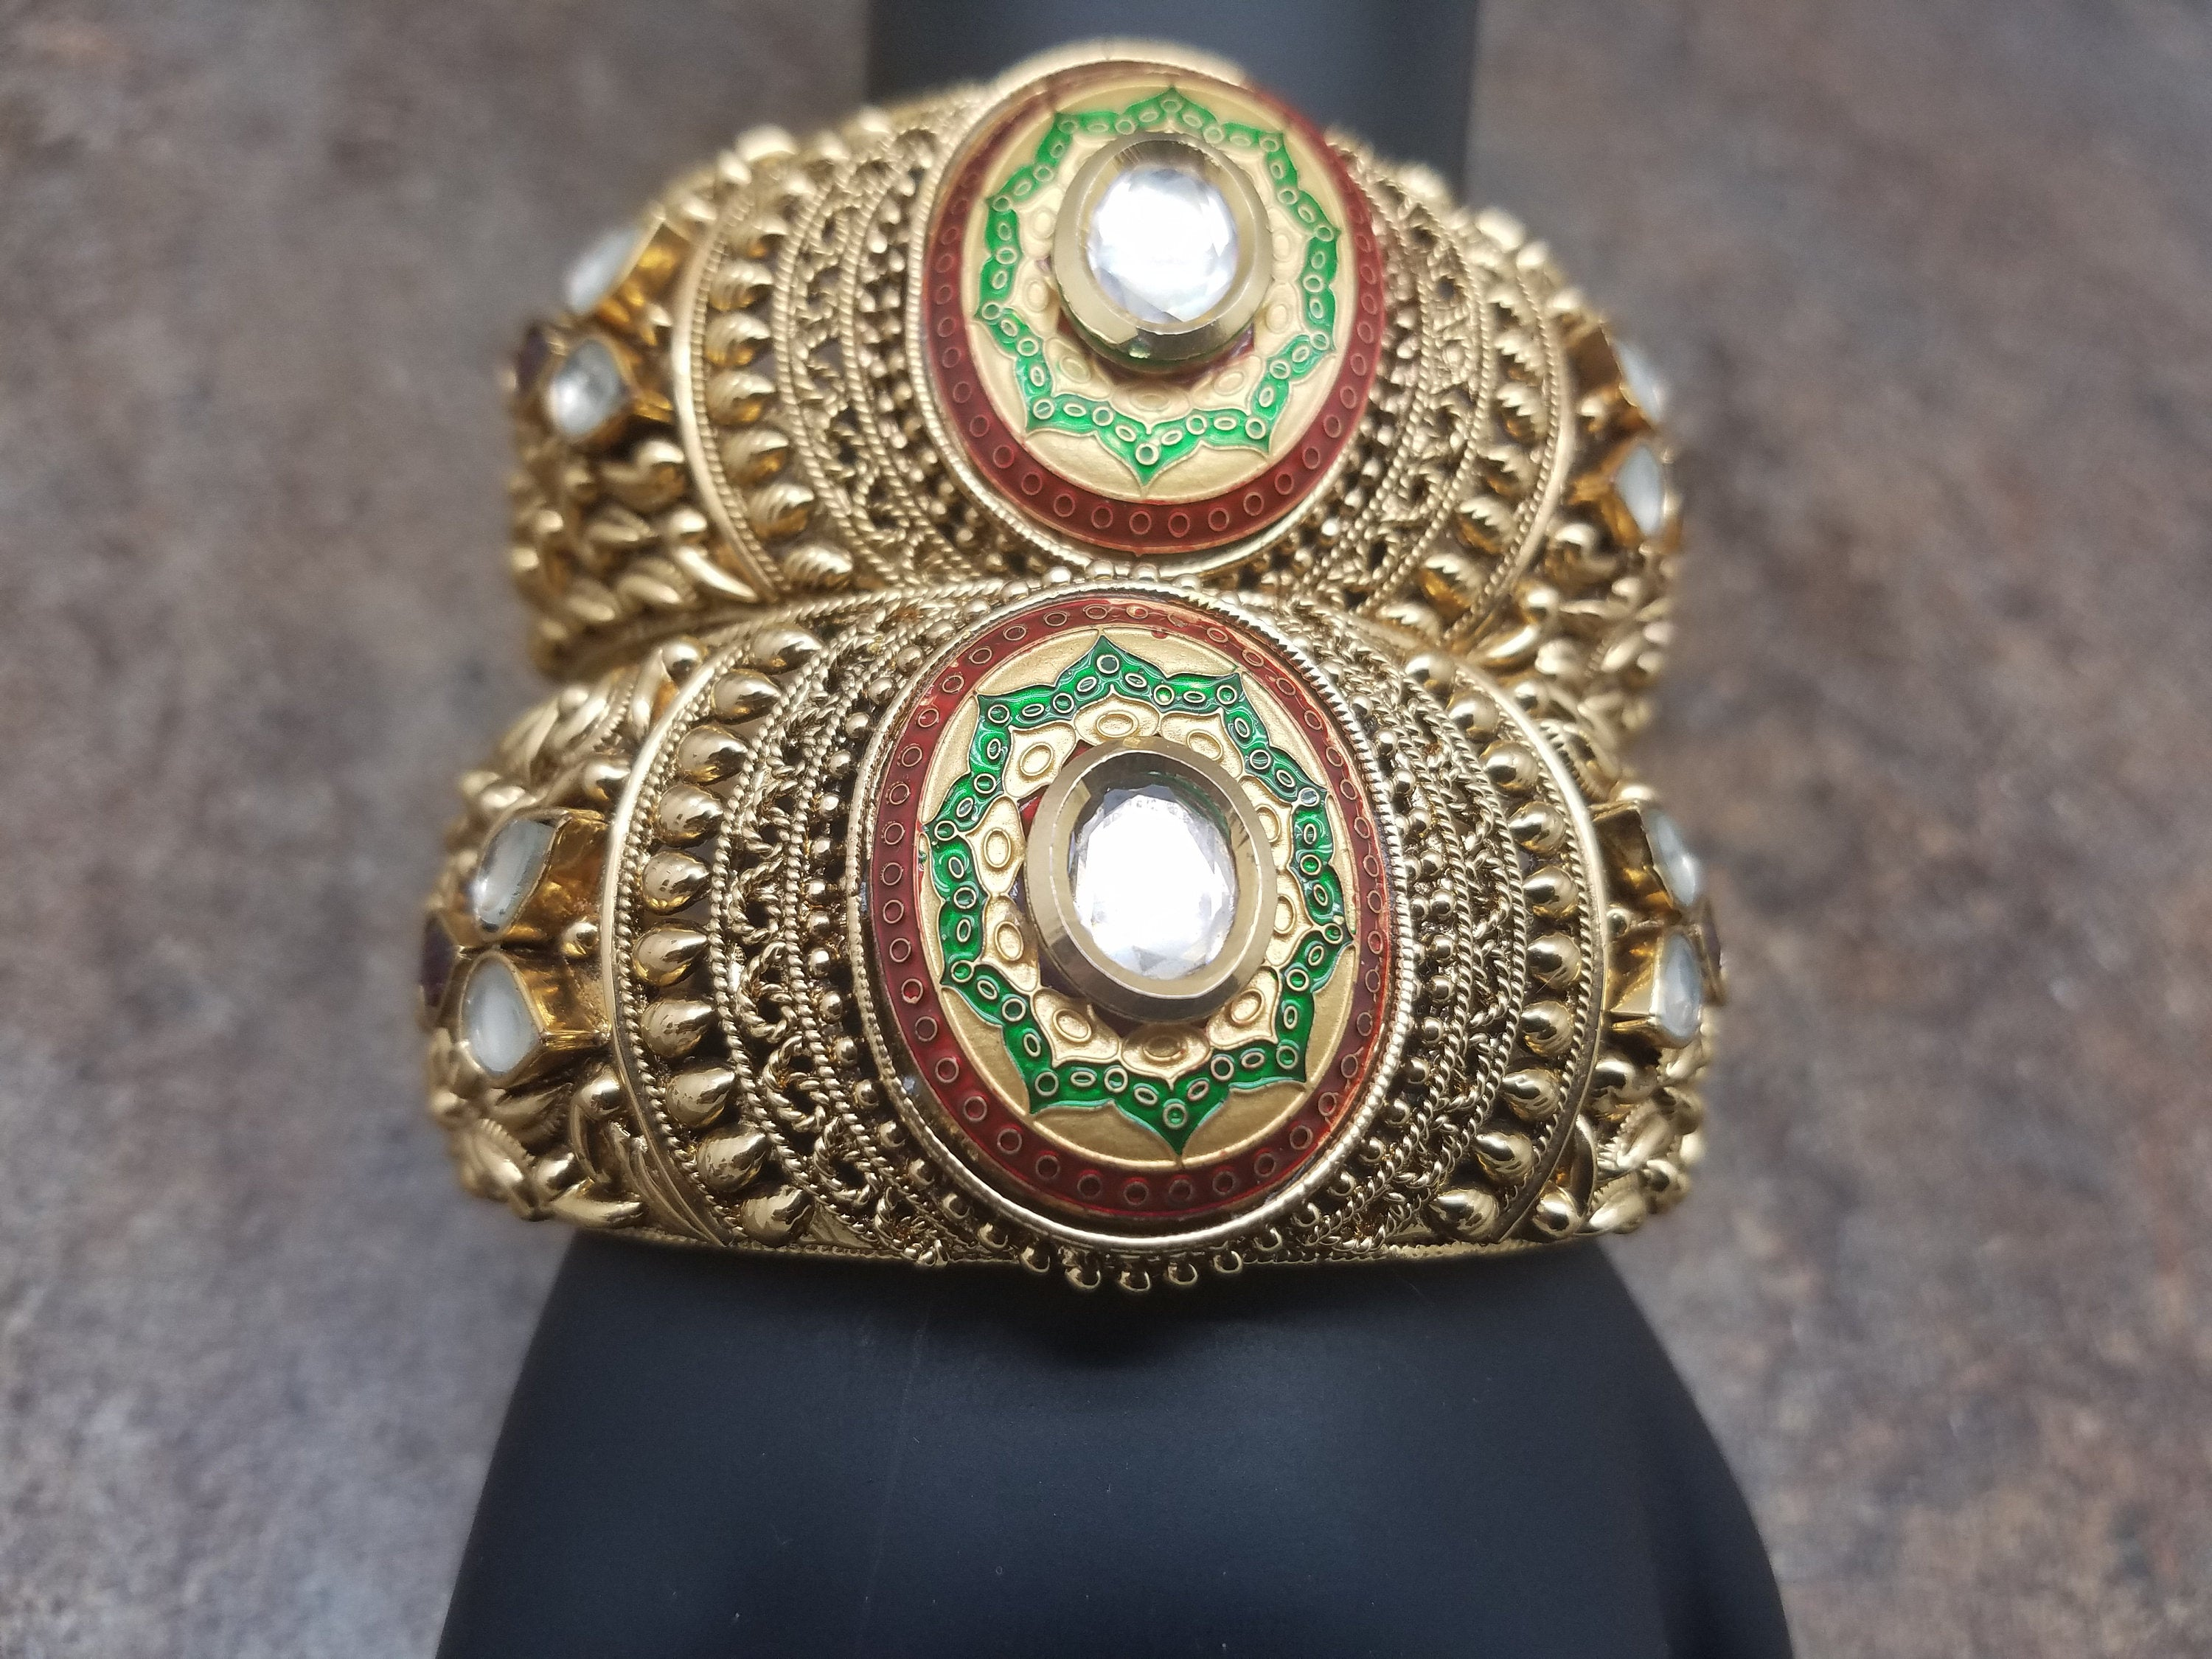 Pair of Bangles, Gold Filigree with Matte Enamel, White and Red CZ Kada, Size 2.6